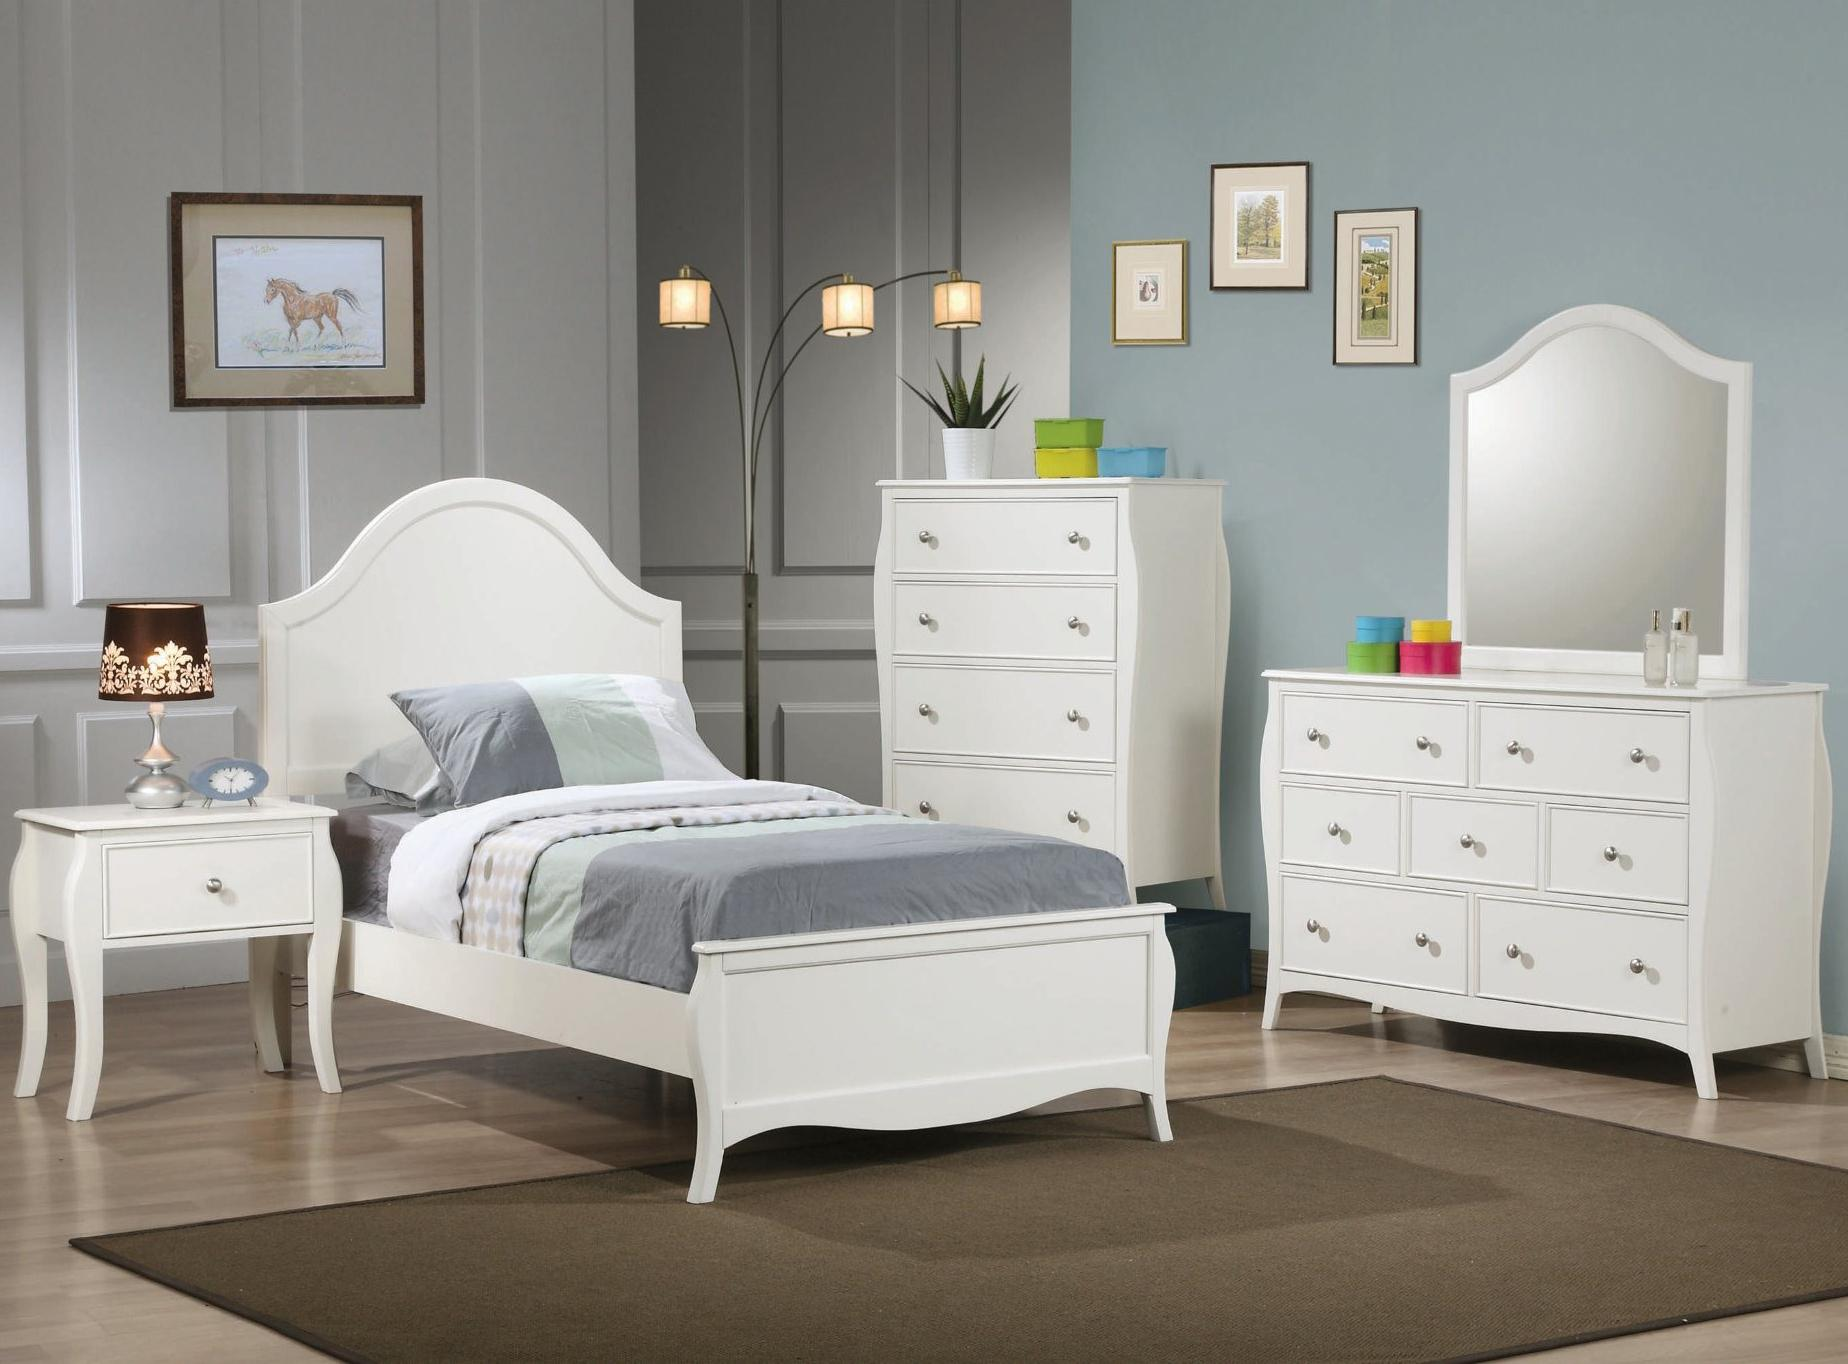 Coaster Furniture - Dominique Bedroom Set | Broadway Furniture